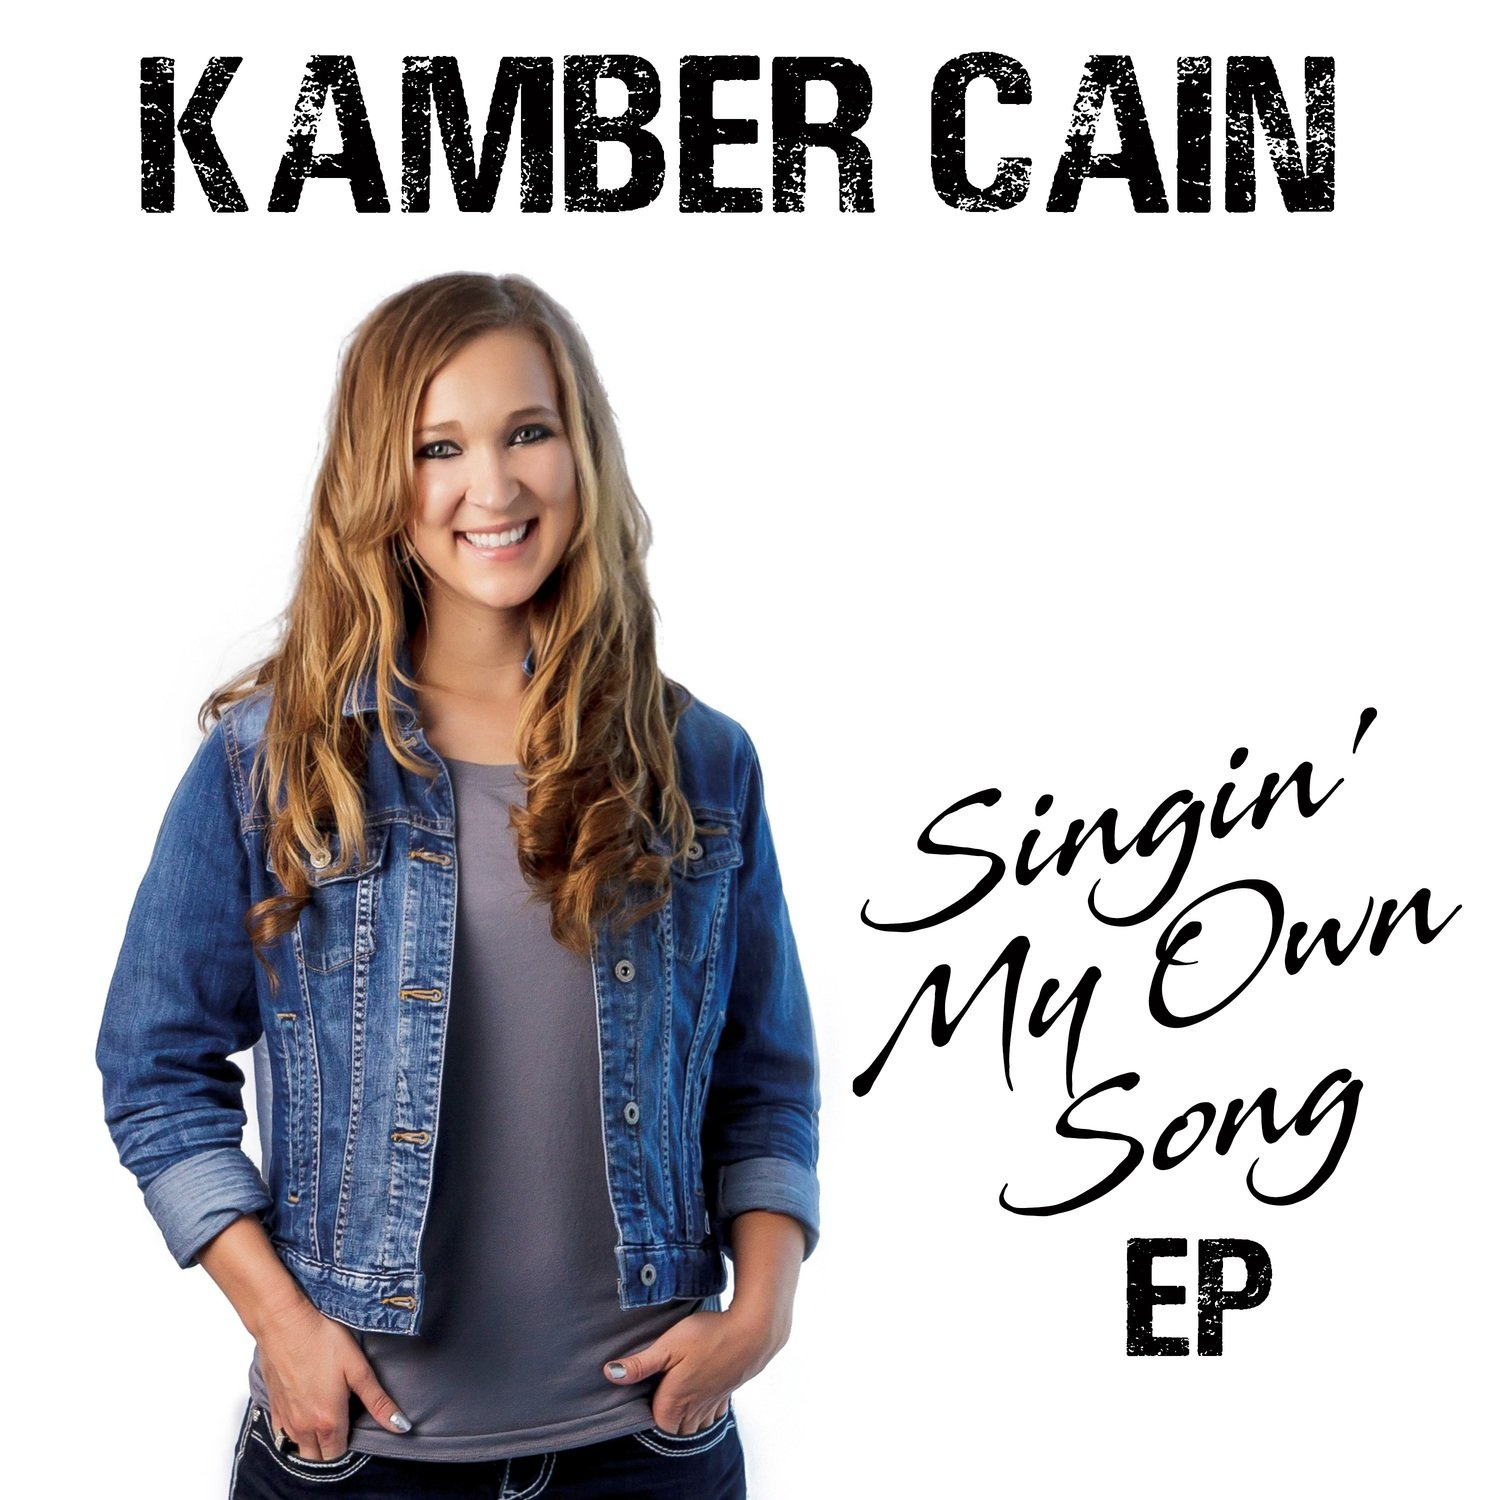 NEW EP! Kamber Cain EP - Singin' My Own Song